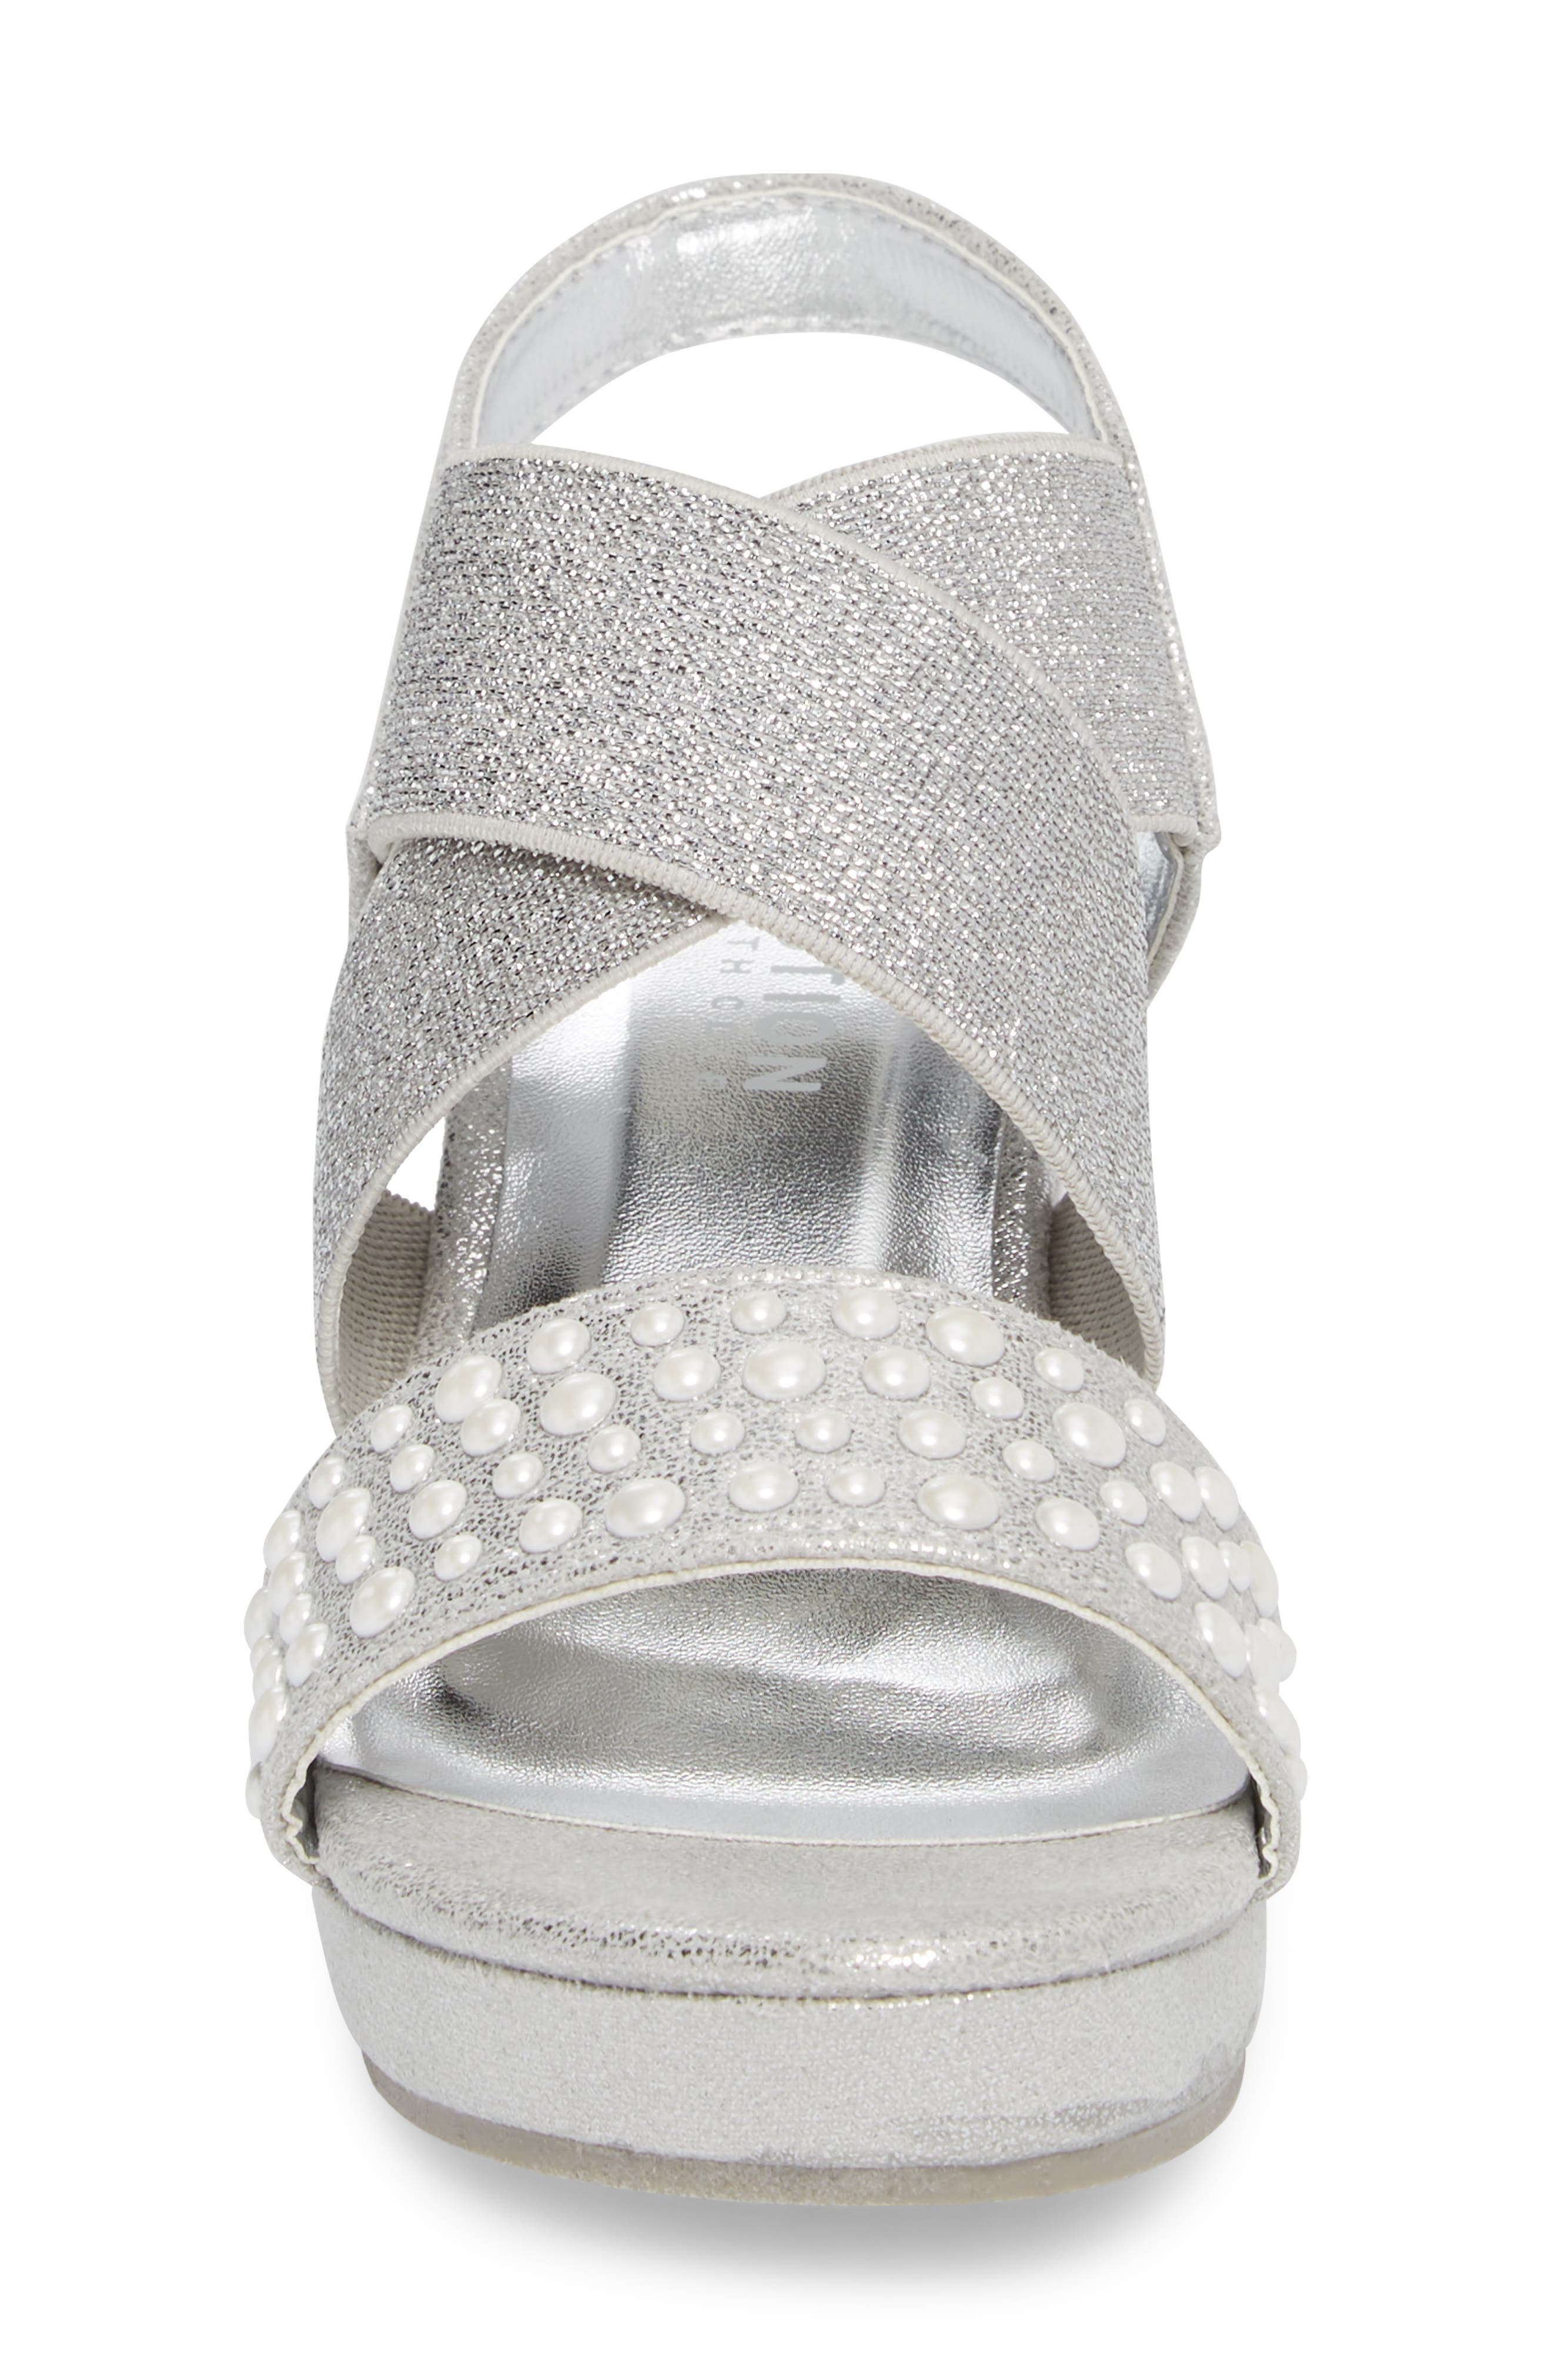 Reed Glimmer Wedge Sandal,                             Alternate thumbnail 4, color,                             Silver